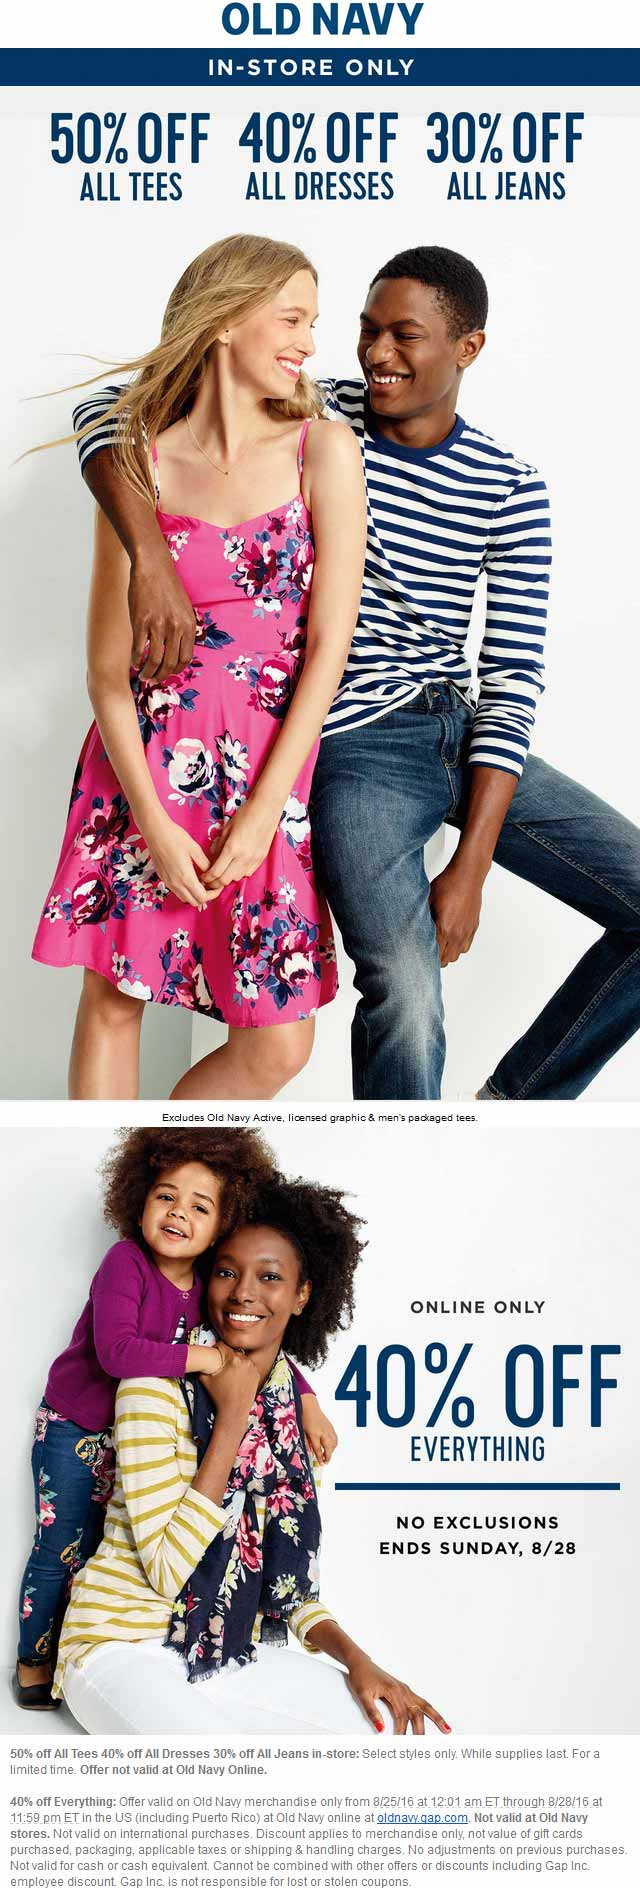 Old Navy Coupon May 2017 30-50% off at Old Navy, or 40% online